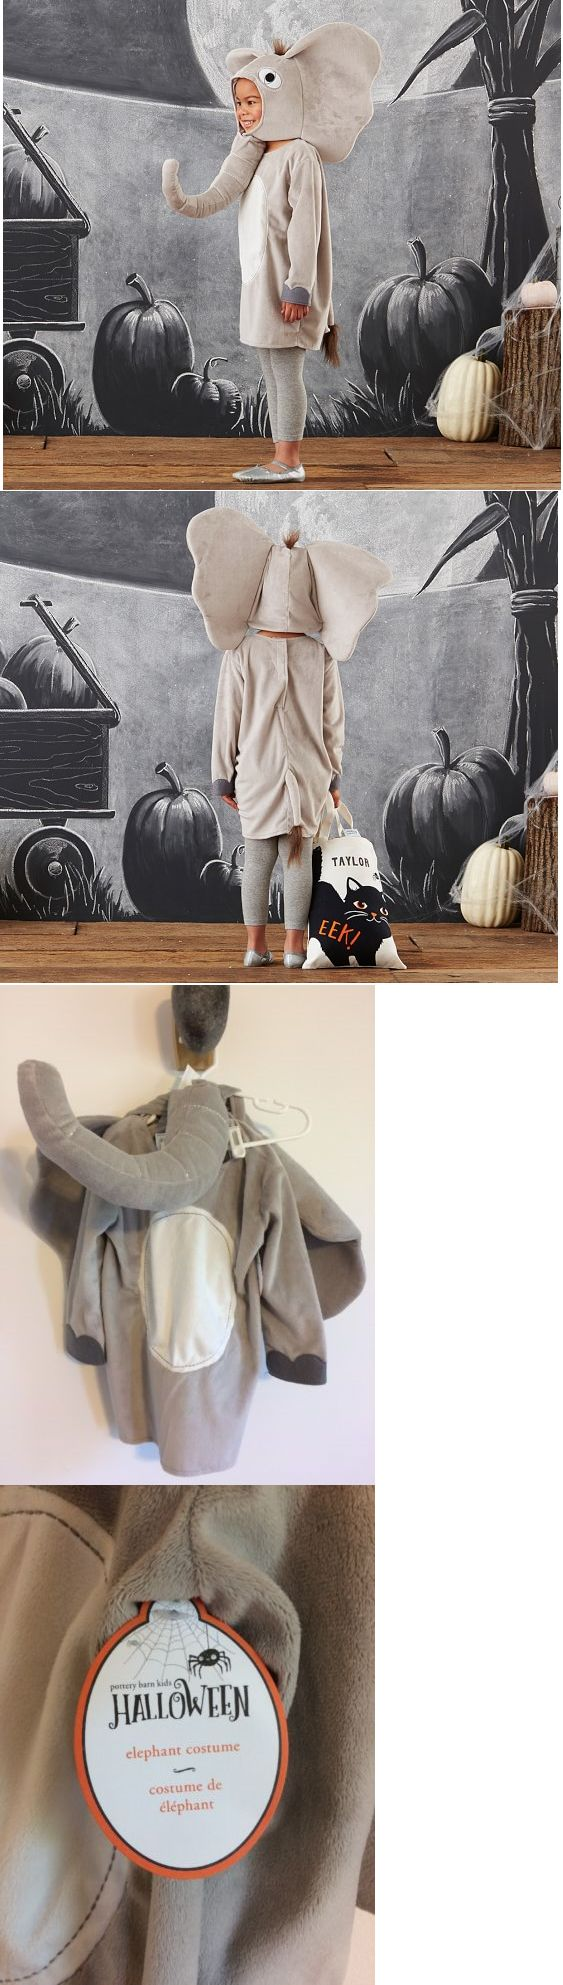 Kids Costumes: Nwt Pottery Barn Kids Halloween Costume Hooded Elephant Costume Sz 3T -> BUY IT NOW ONLY: $59.99 on eBay!